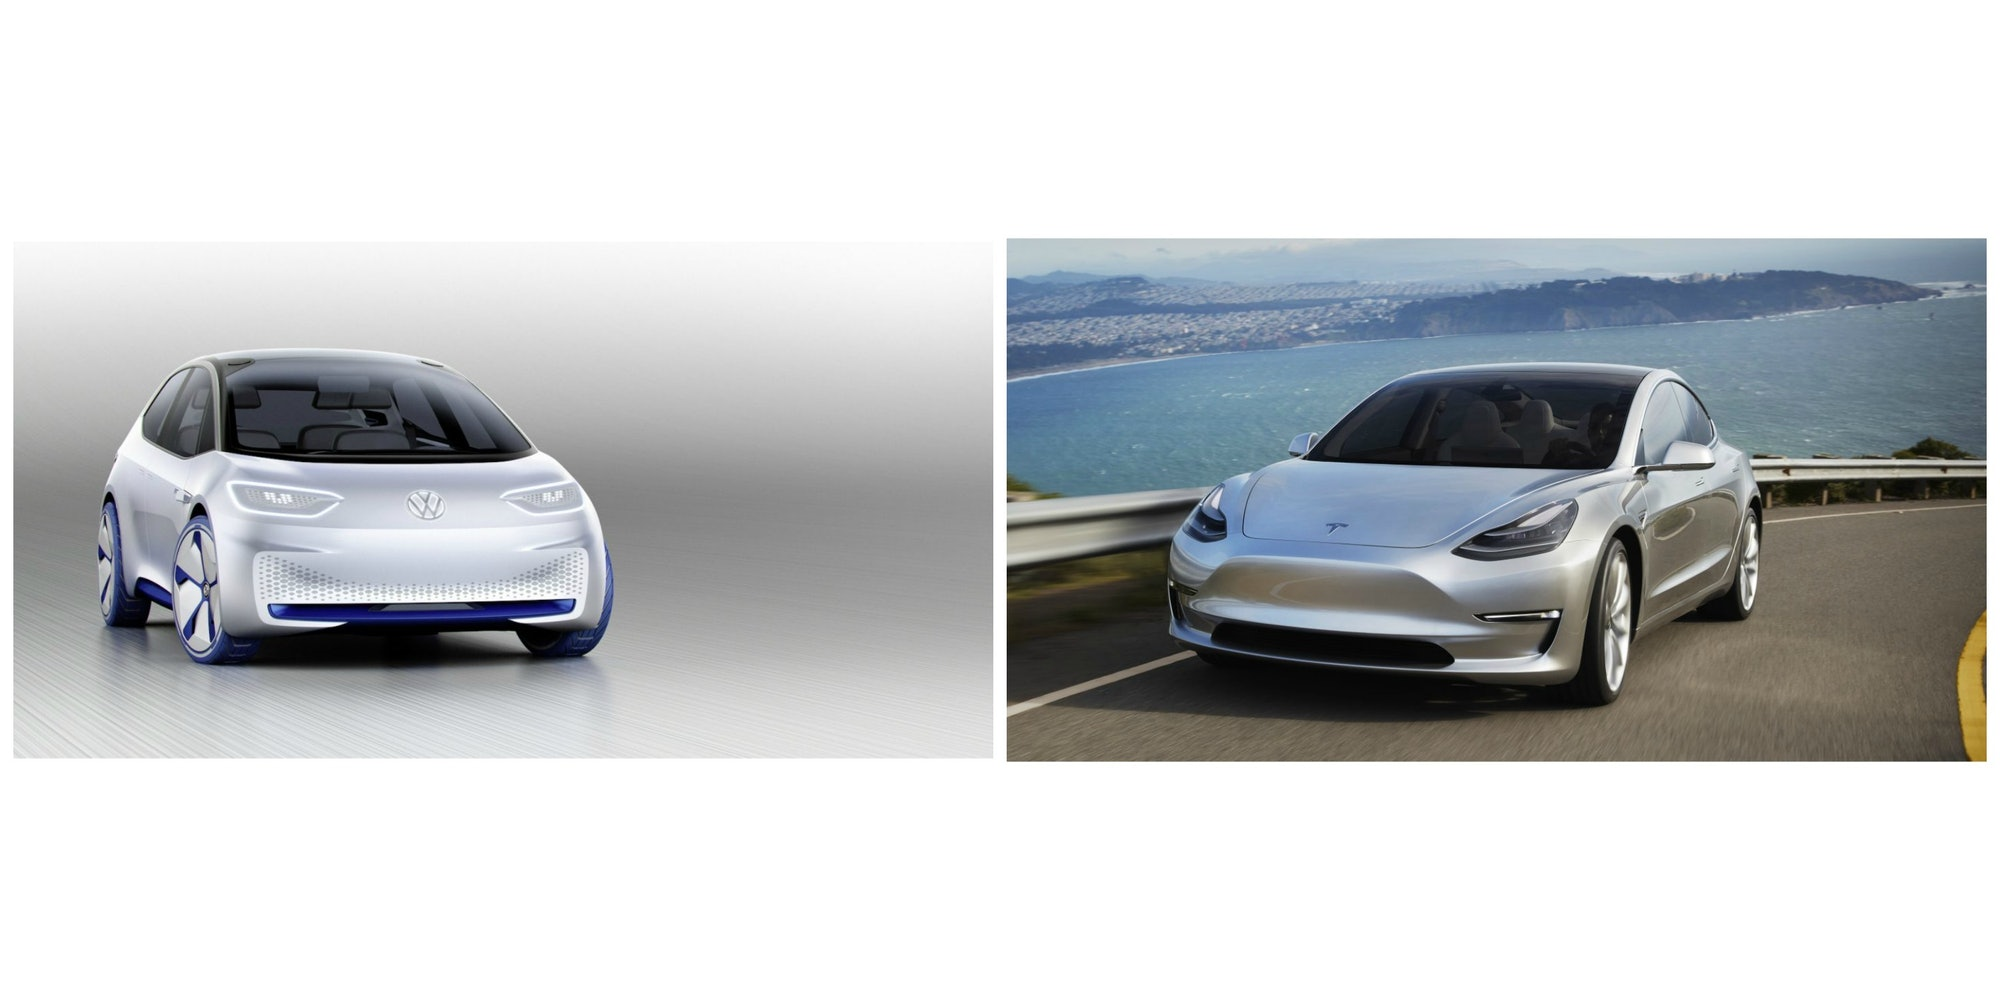 Volkswagen I.D. Tesla Model 3 cars concept electric vehicles